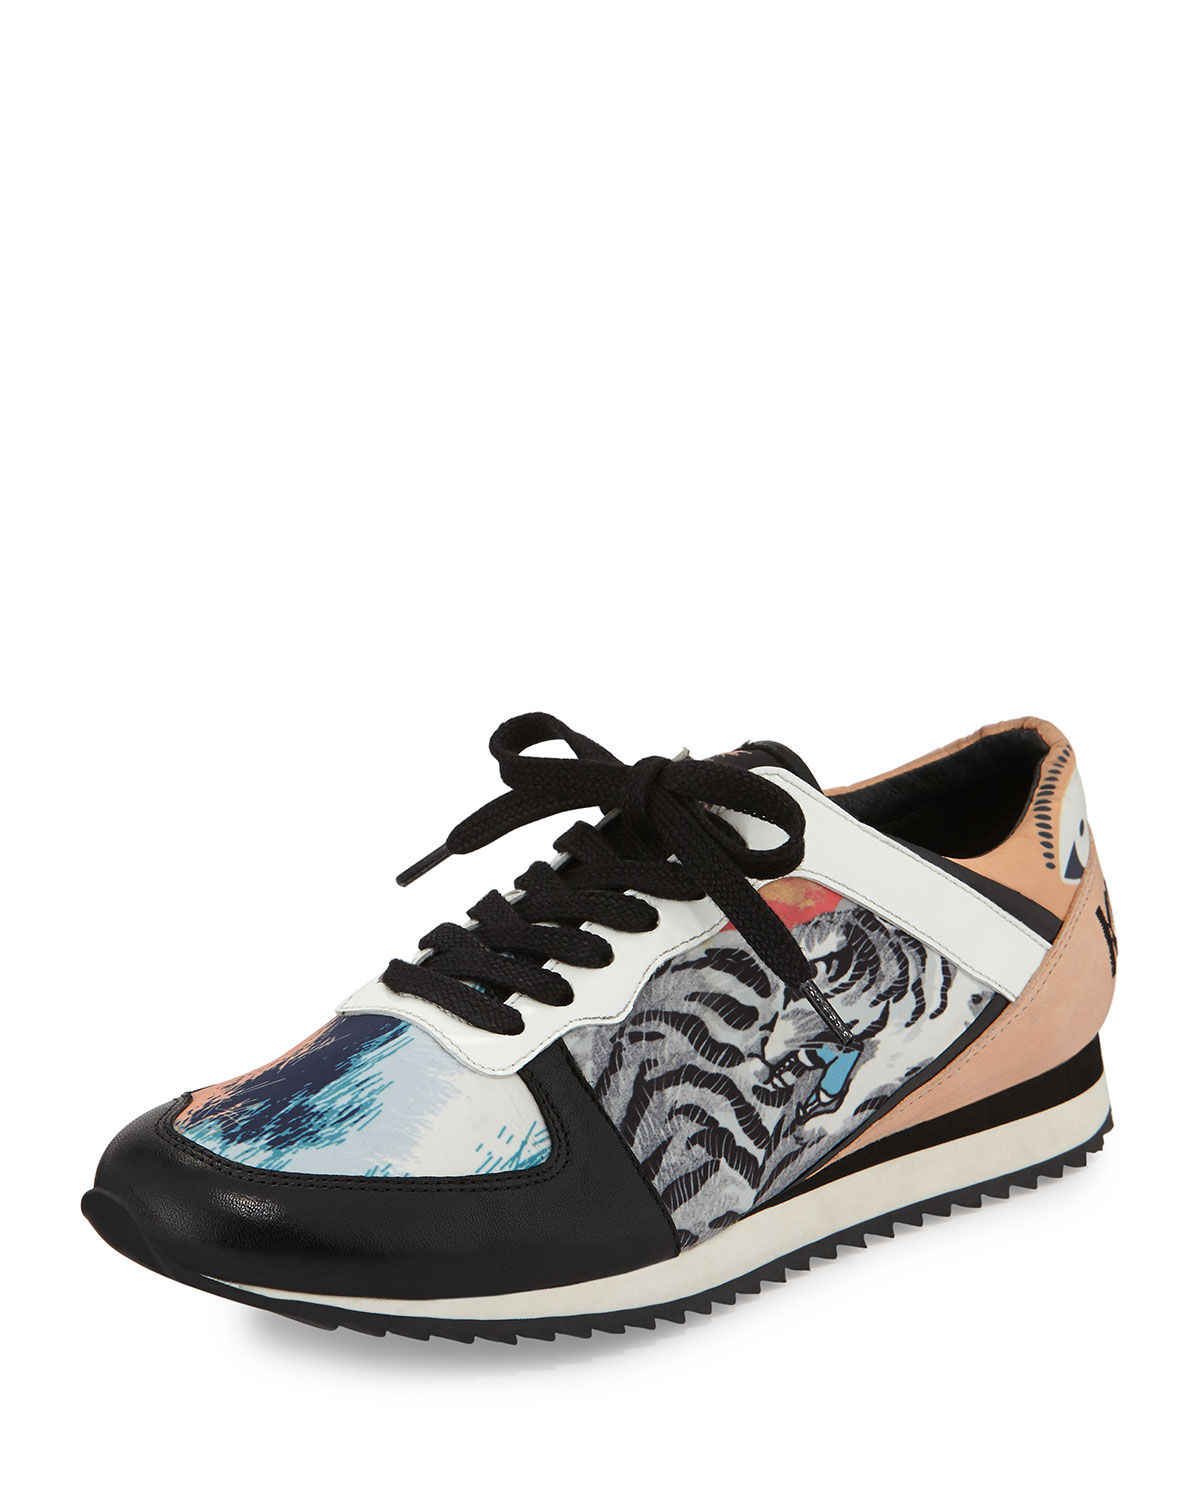 Lyst - Kenzo Tiger-print Lace-up Sneaker in Blue